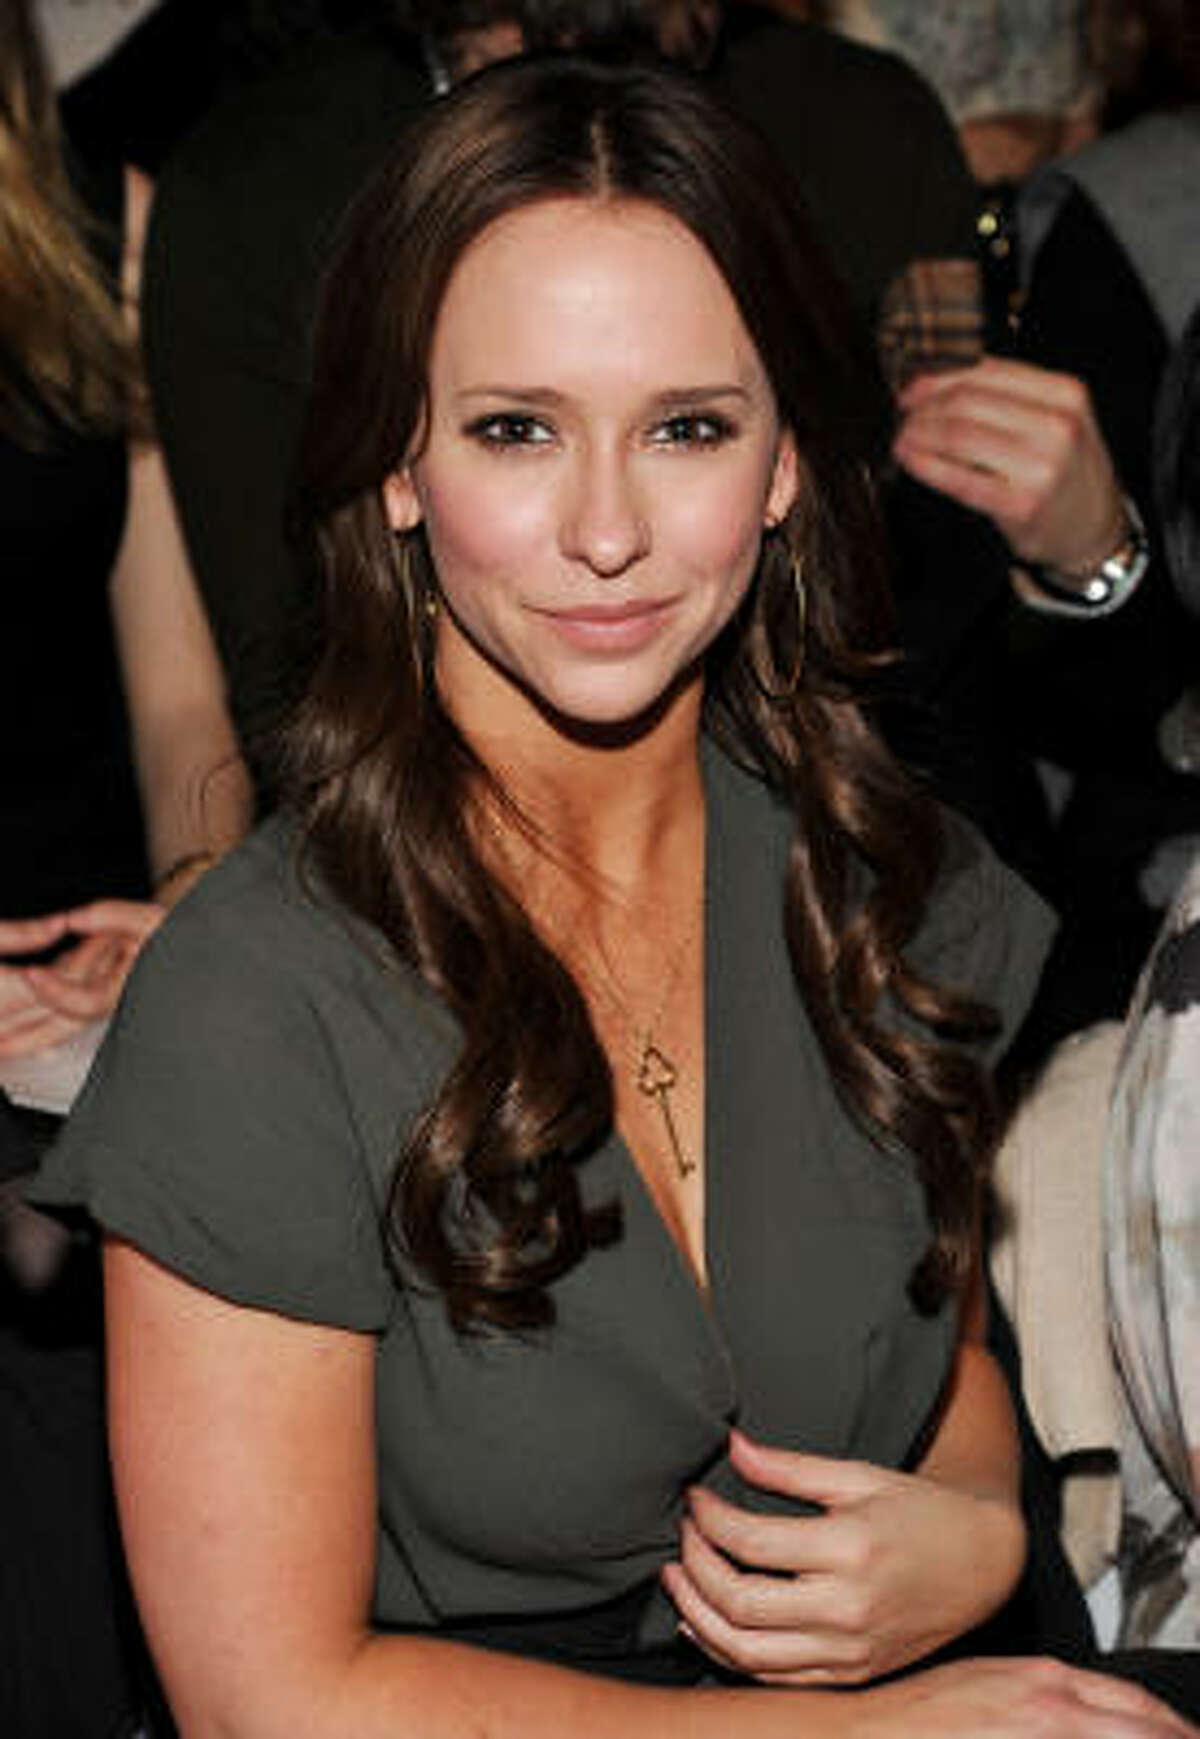 Actress Jennifer Love Hewitt attends the BCBGMAXAZRIA Fall 2011 fashion show at Mercedes-Benz Fashion Week on Thursday, Feb. 10, 2011 in New York.